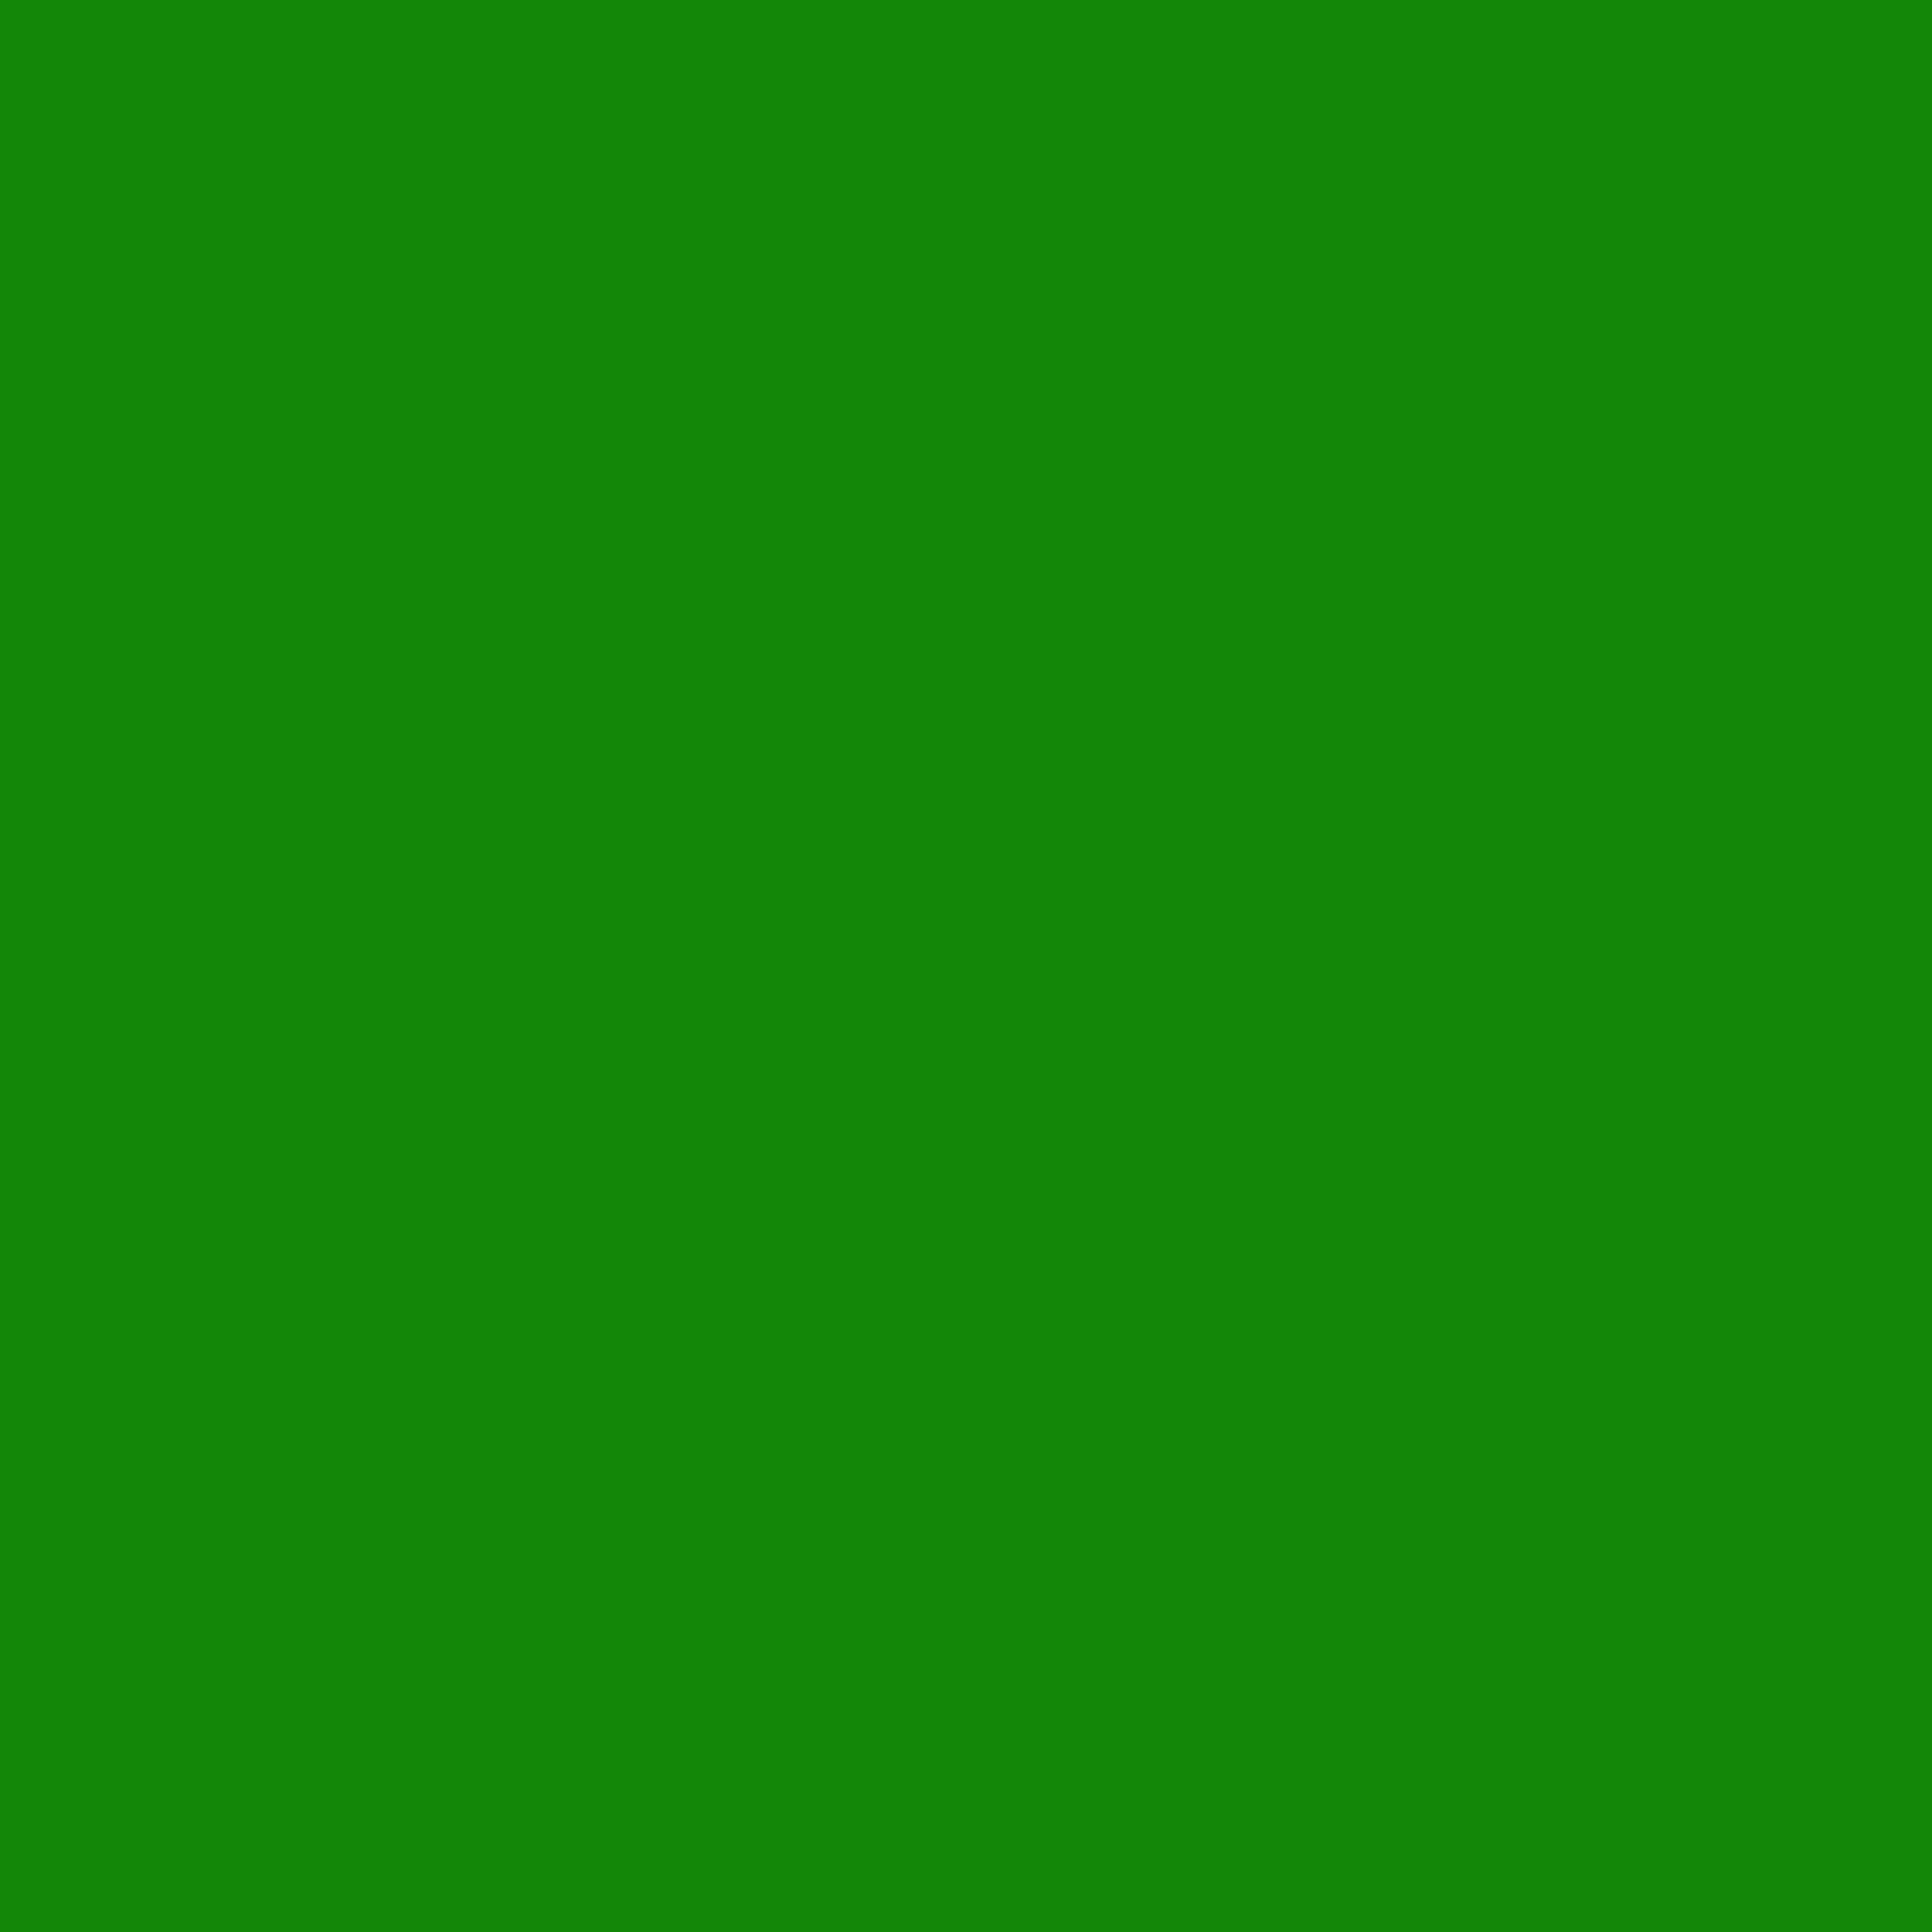 2732x2732 India Green Solid Color Background